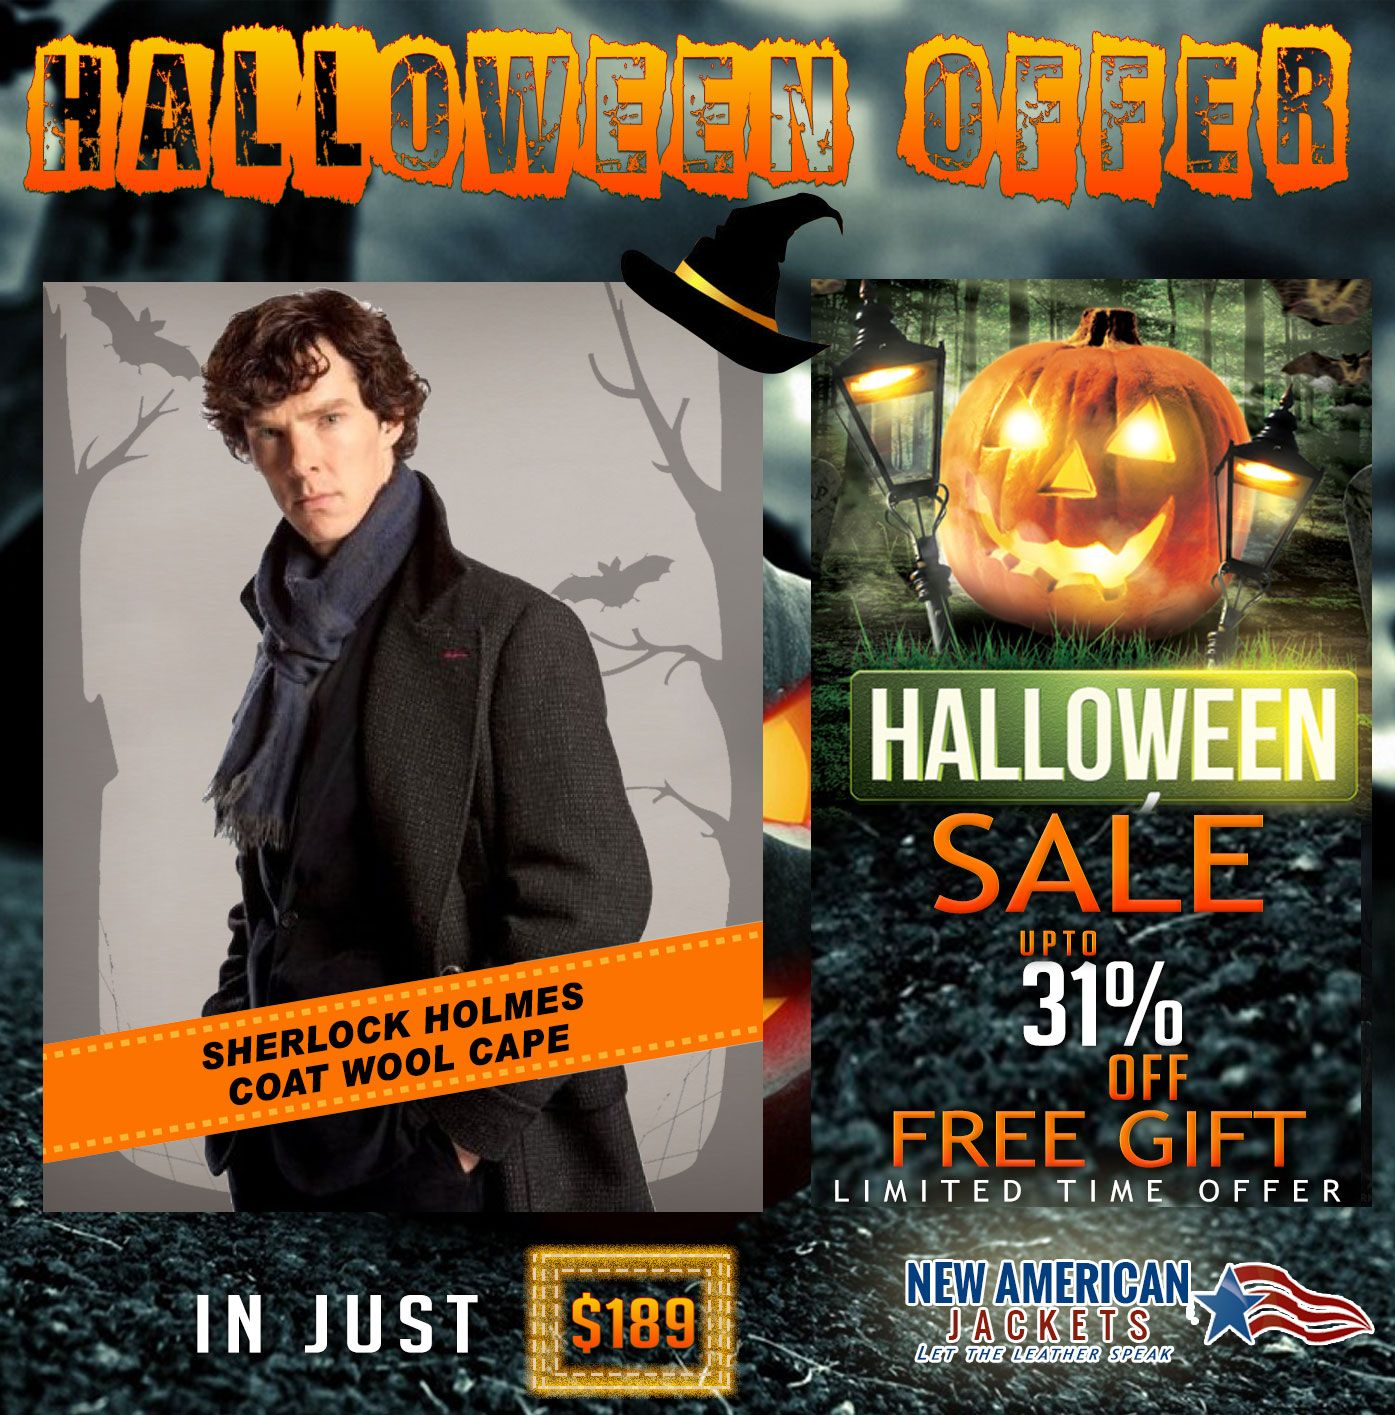 Halloween Sale and Clearance! Sherlock Holmes Coat in Wool Cape now available on discount sale Offer with Free worldwide shipping.  For more detail Visit: >> #Sherlock #Holmes #HalloweenSale #Clearance #costume #boysFashion #halloweencostume #halloweenfashion #lushoween #irememberhalloween #maleFashion #jacket #Celebrity #Shopping #onlineshopping #classy #styleatanyage #clothes #gentleman #gentlemanstyle